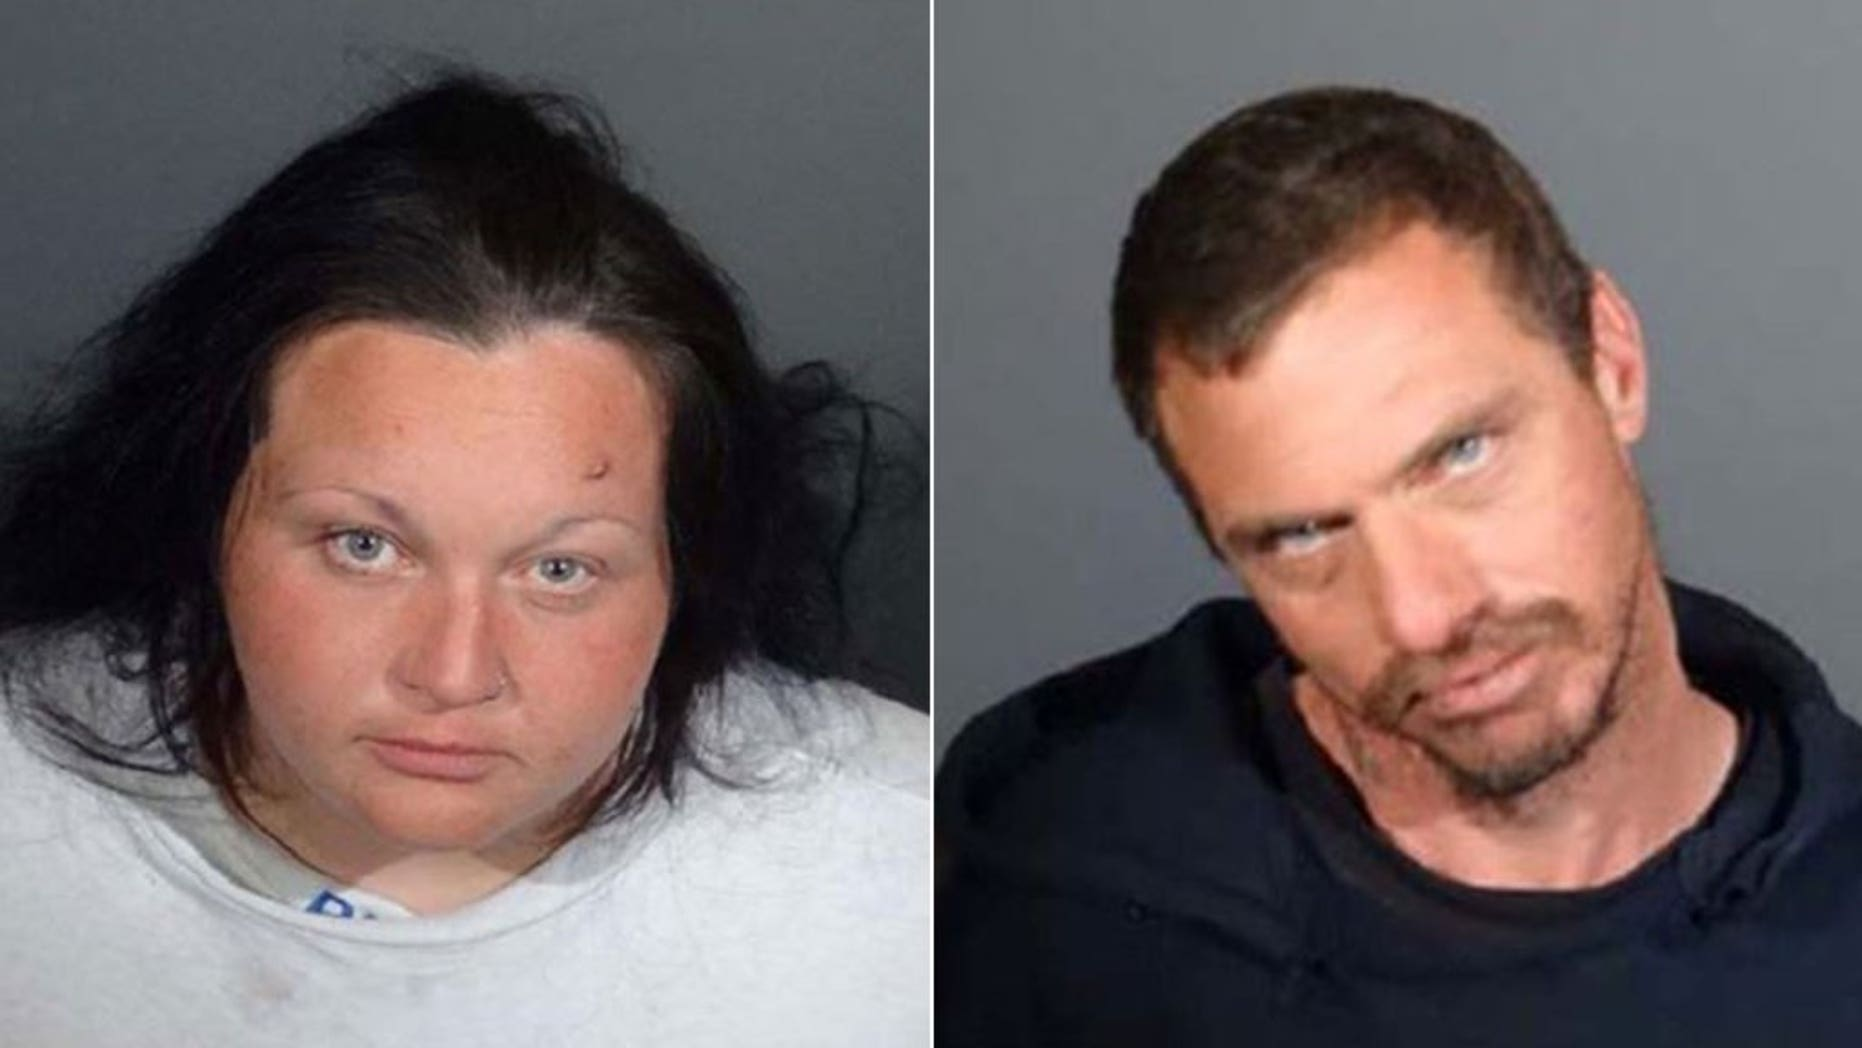 Sarah Nilson, 32, and Vincent Calogero, 38, are accused of attempting to sell their children in exchange for money and drugs.